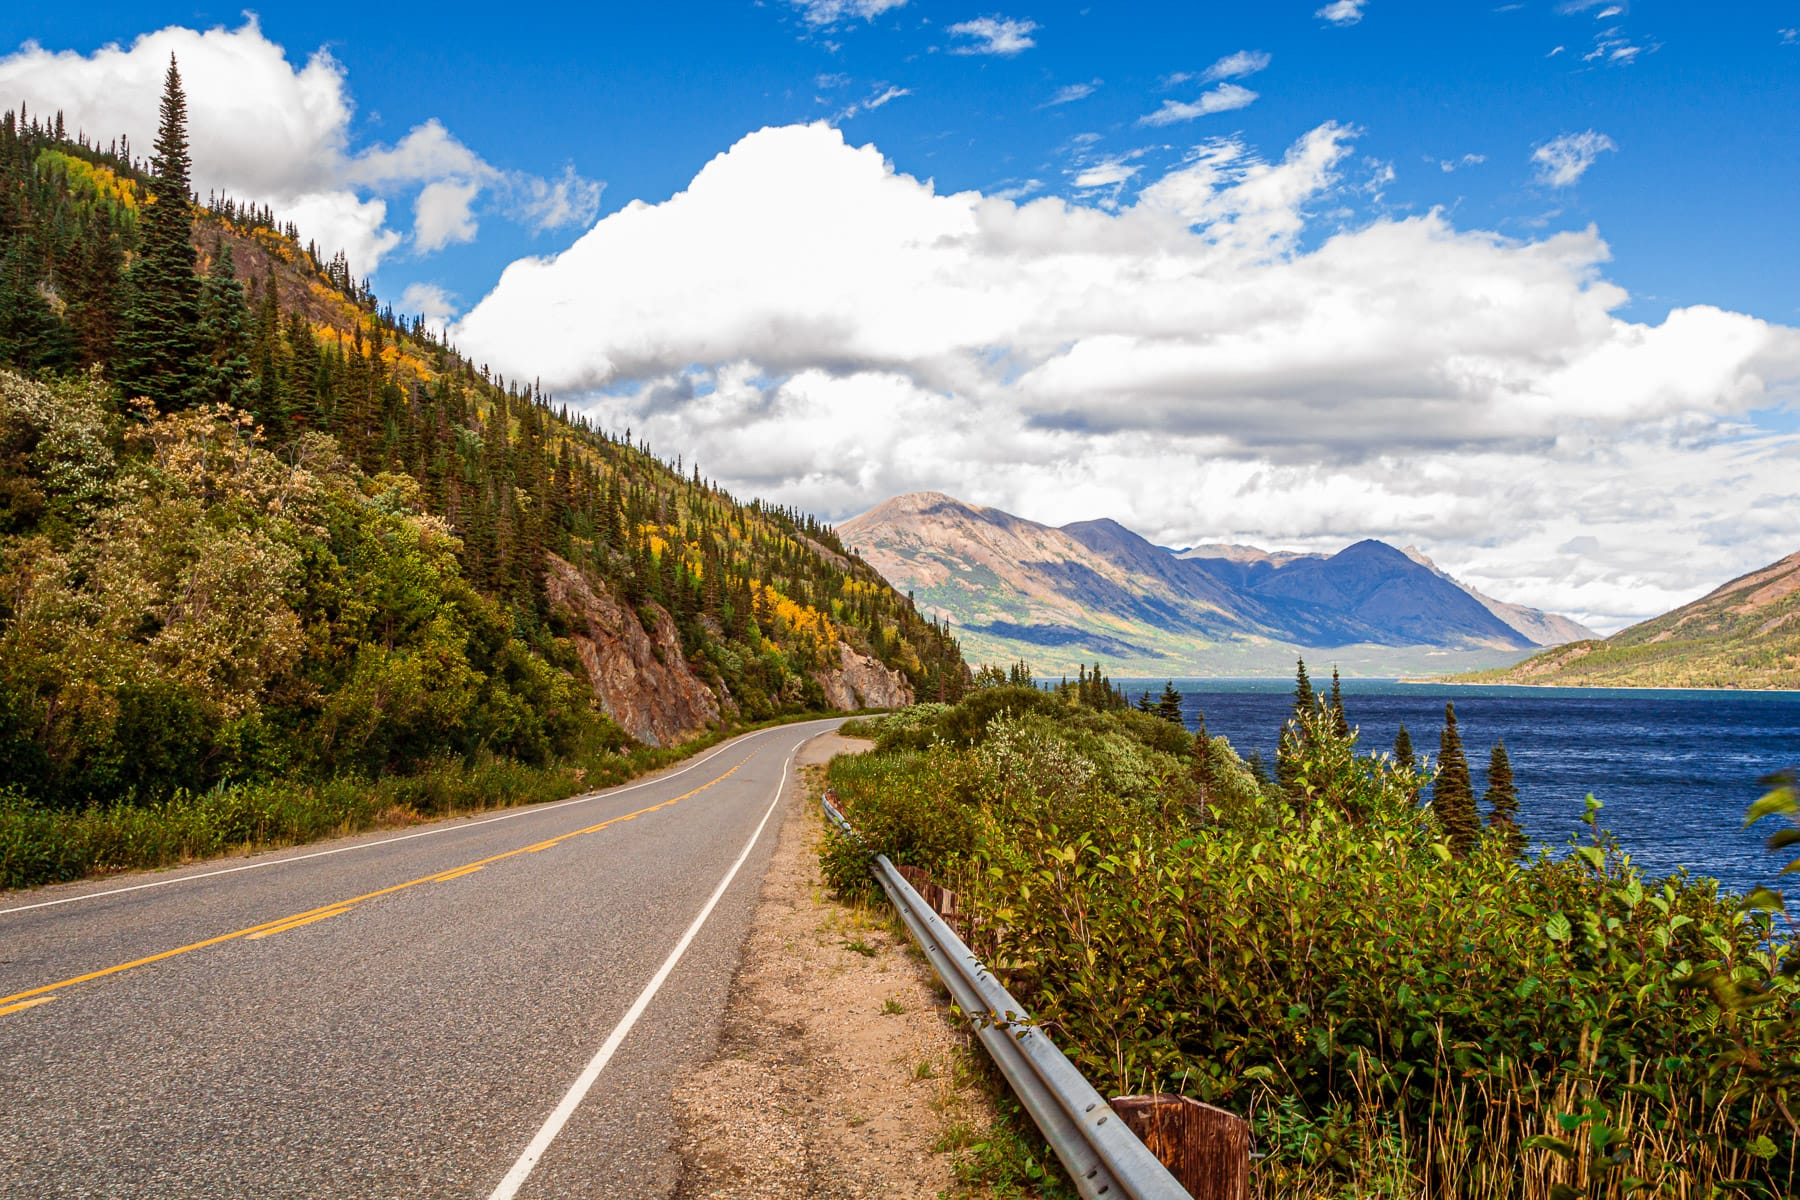 The Klondike Highway stretches along the shore of Tutshi Lake in the Stikine Region of British Columbia, Canada.